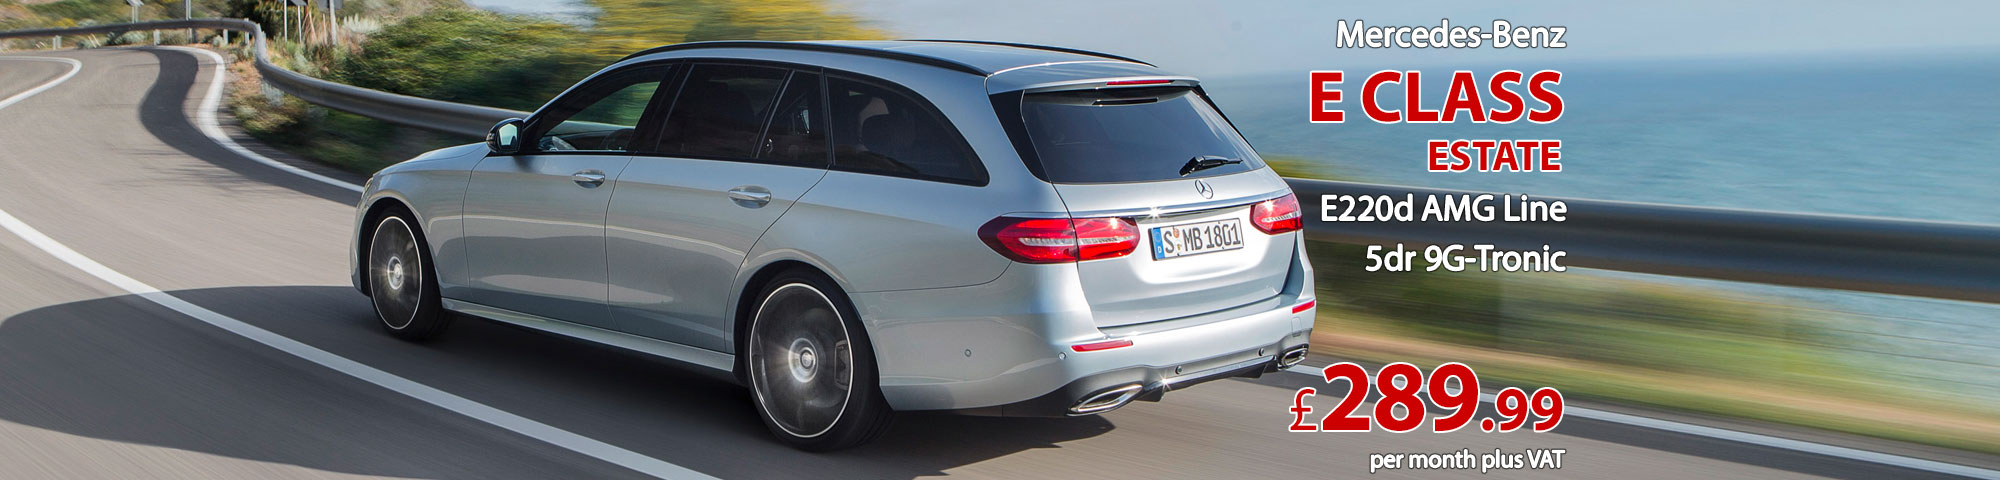 Mercedes benz lease deals car contract hire for Mercedes benz e class lease offers